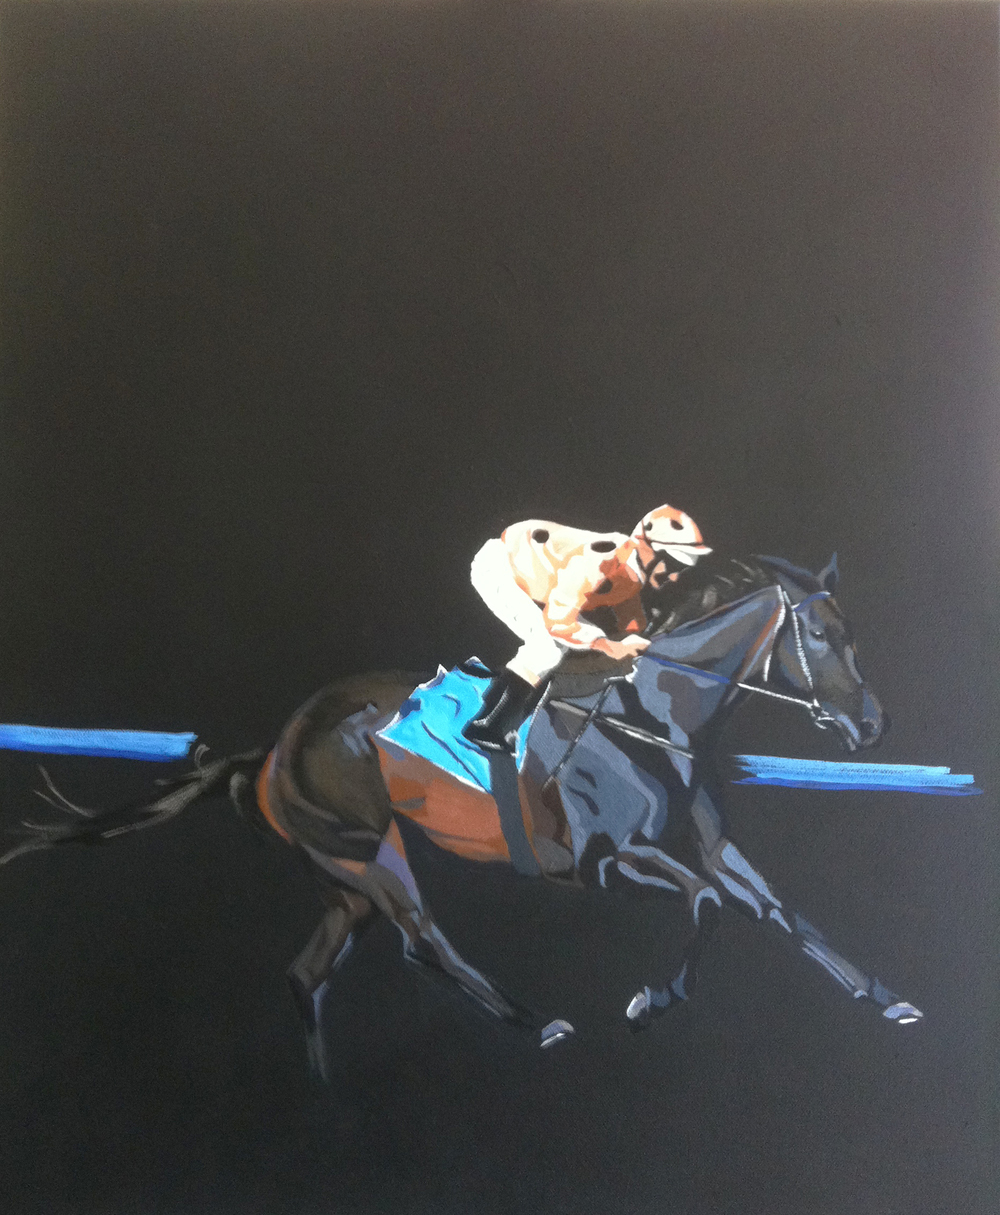 Black Caviar.    crylic polymer on canvas. 35 x 45 cm  ©  2012 Ida Montague  Auctioned at charity event.